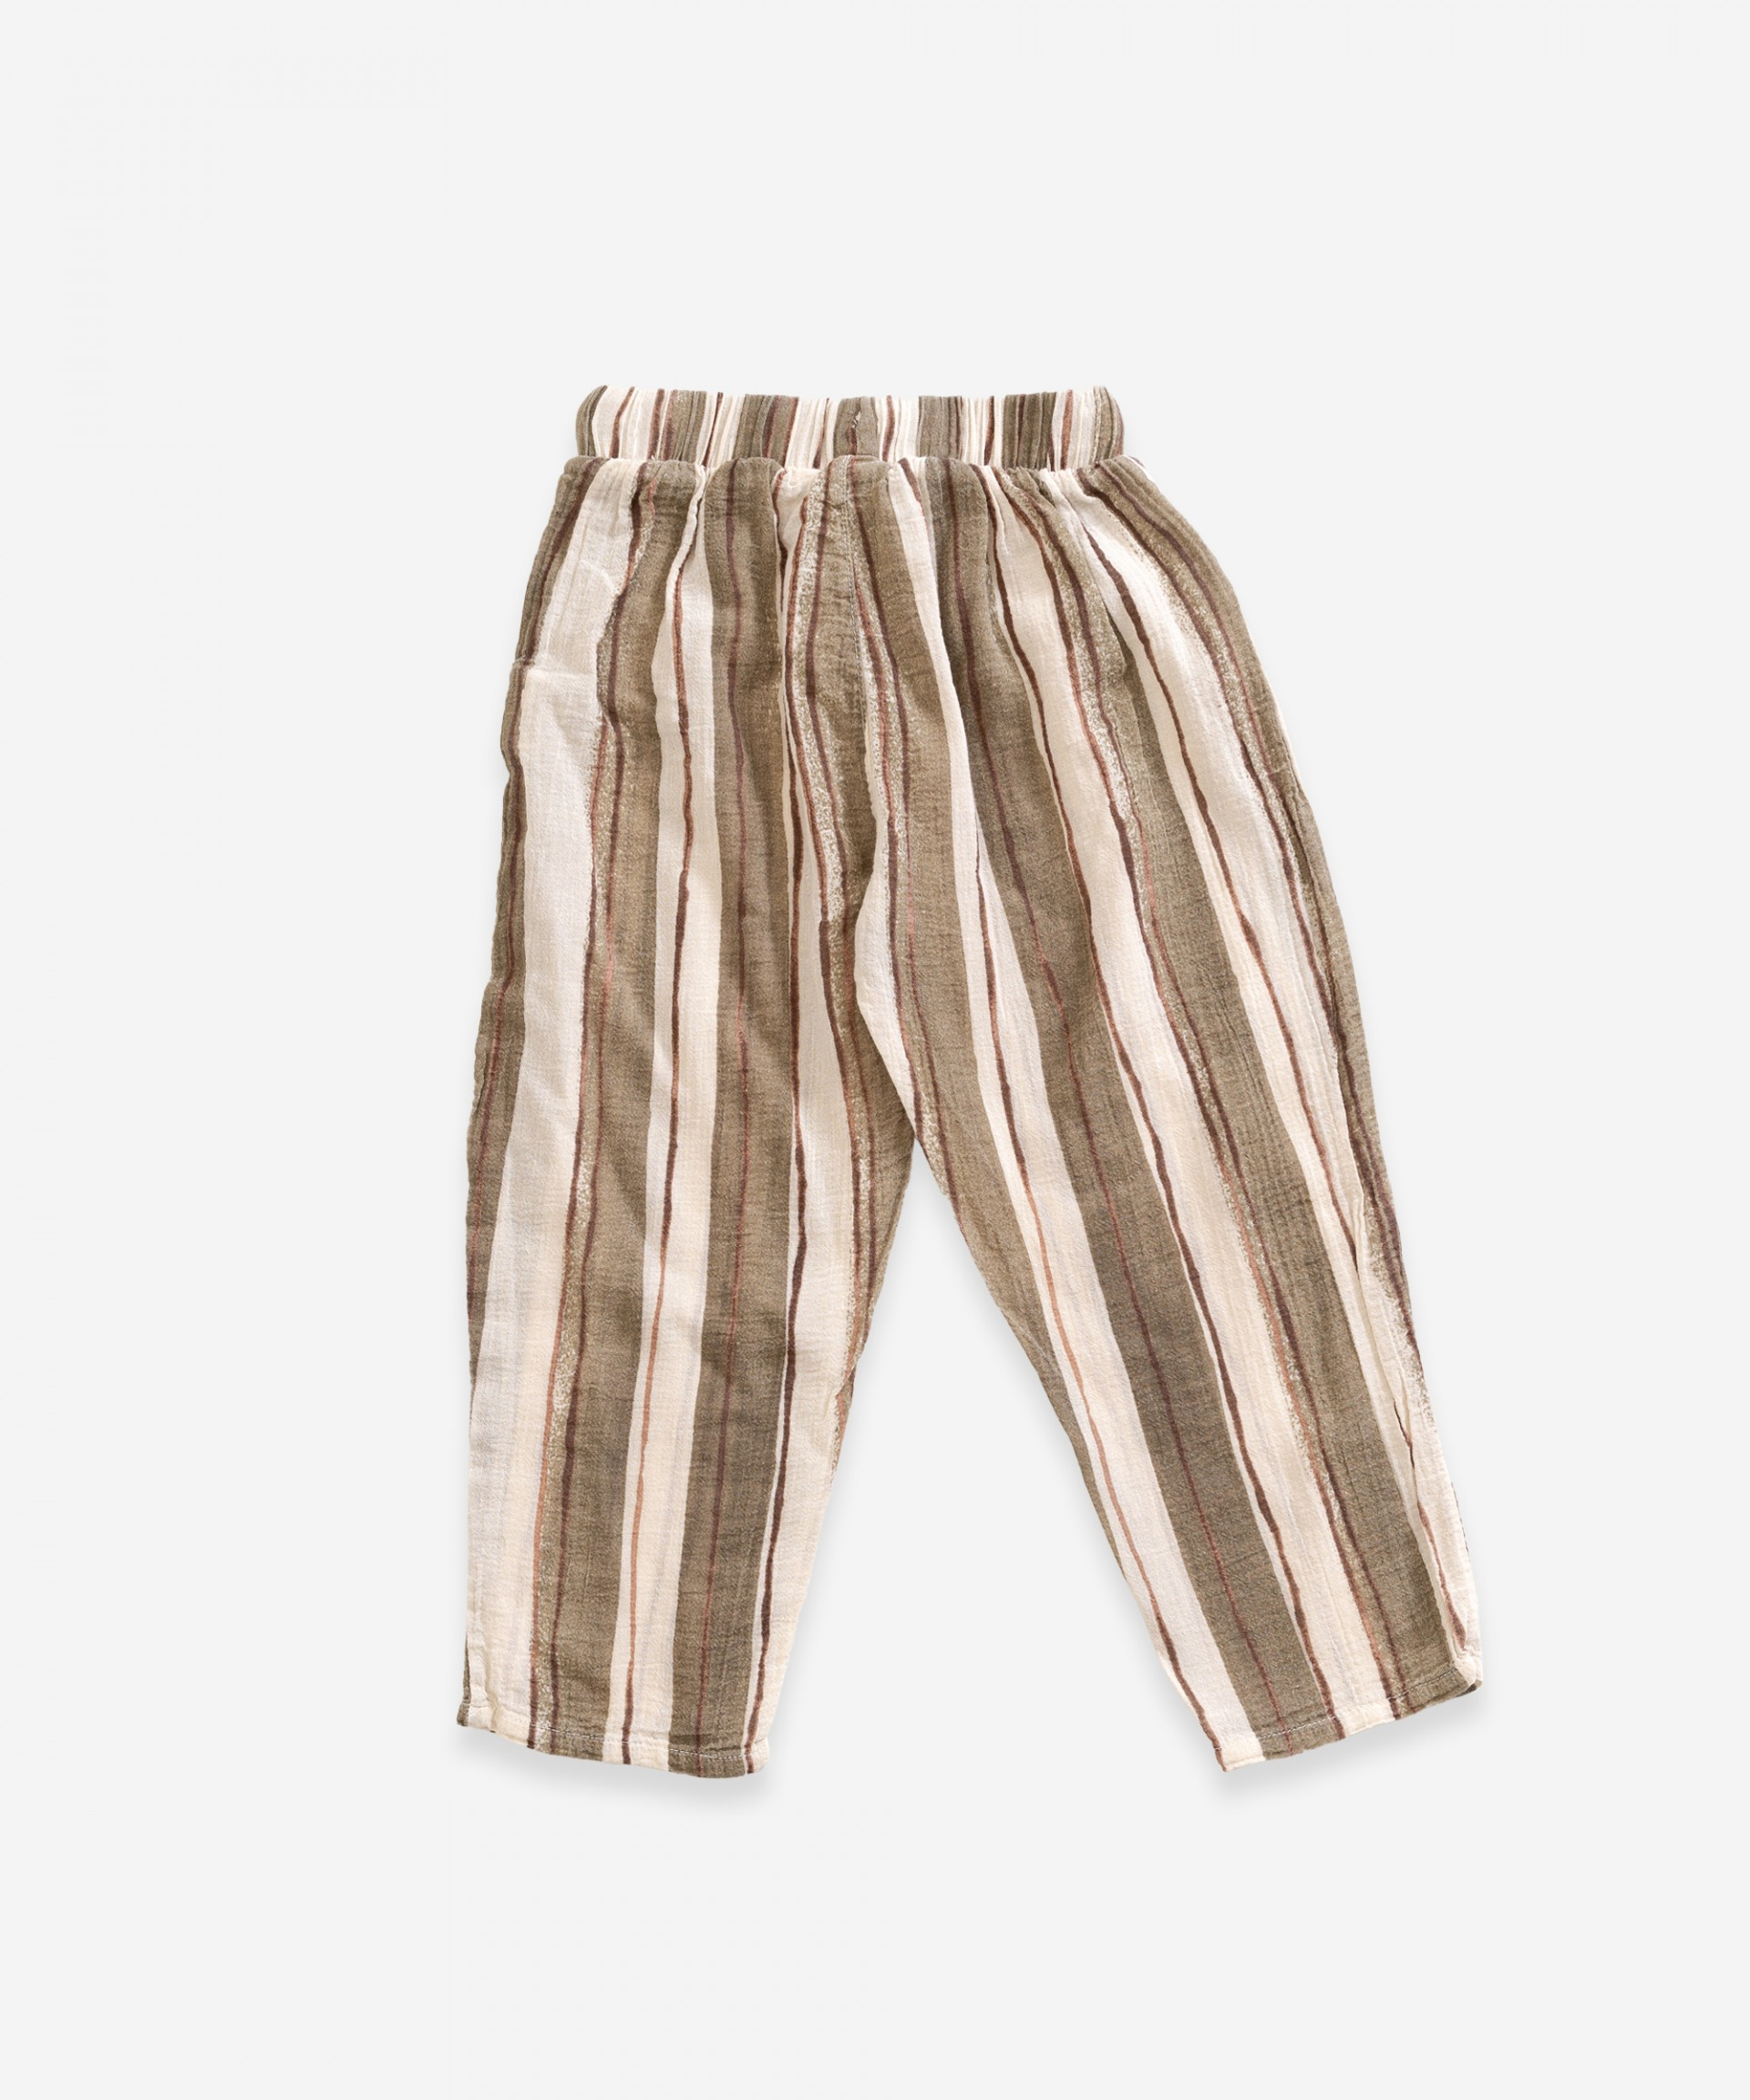 Striped cotton trousers | Weaving